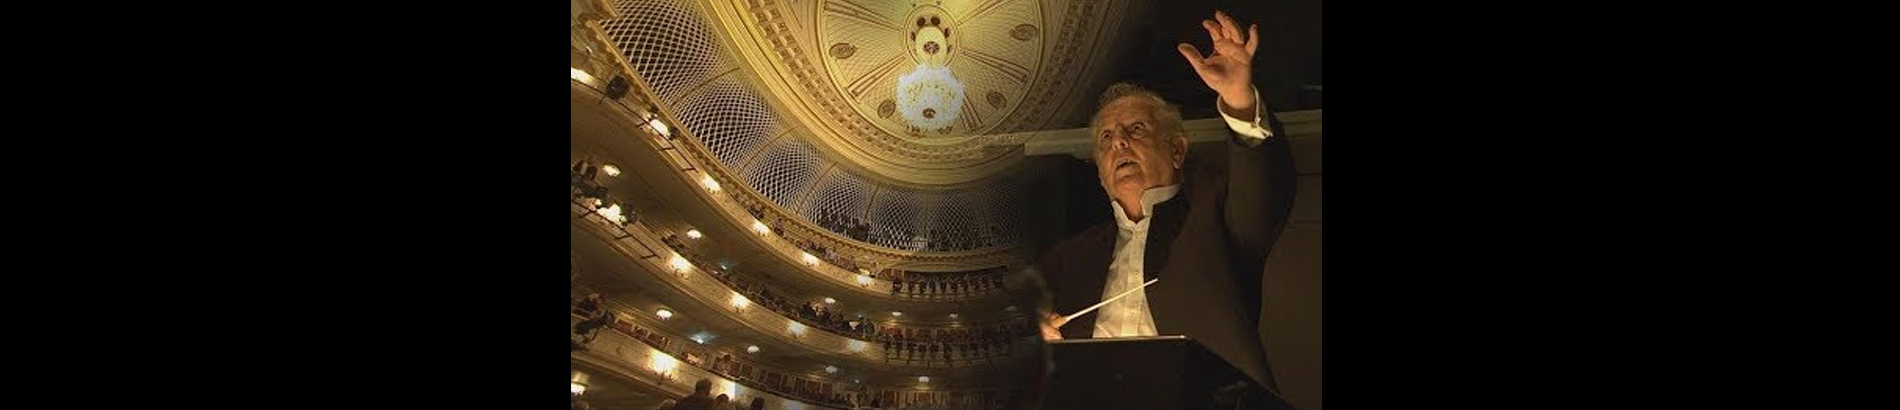 Berlin Staatsoper shines with renewed splendour